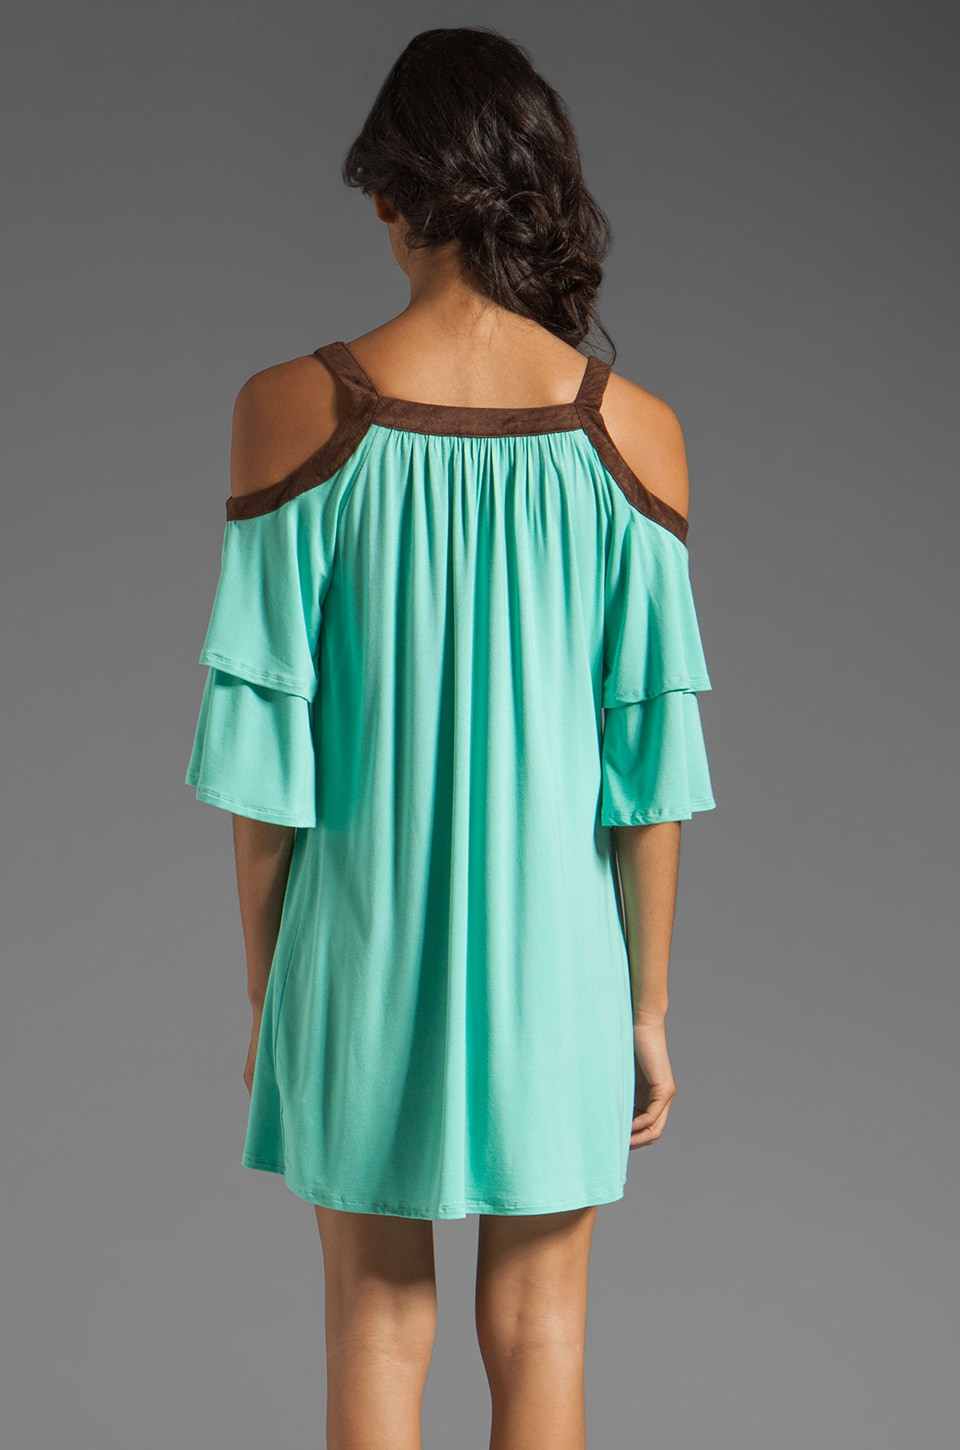 VAVA by Joy Han Piper Dress with Suede Trim in Mint